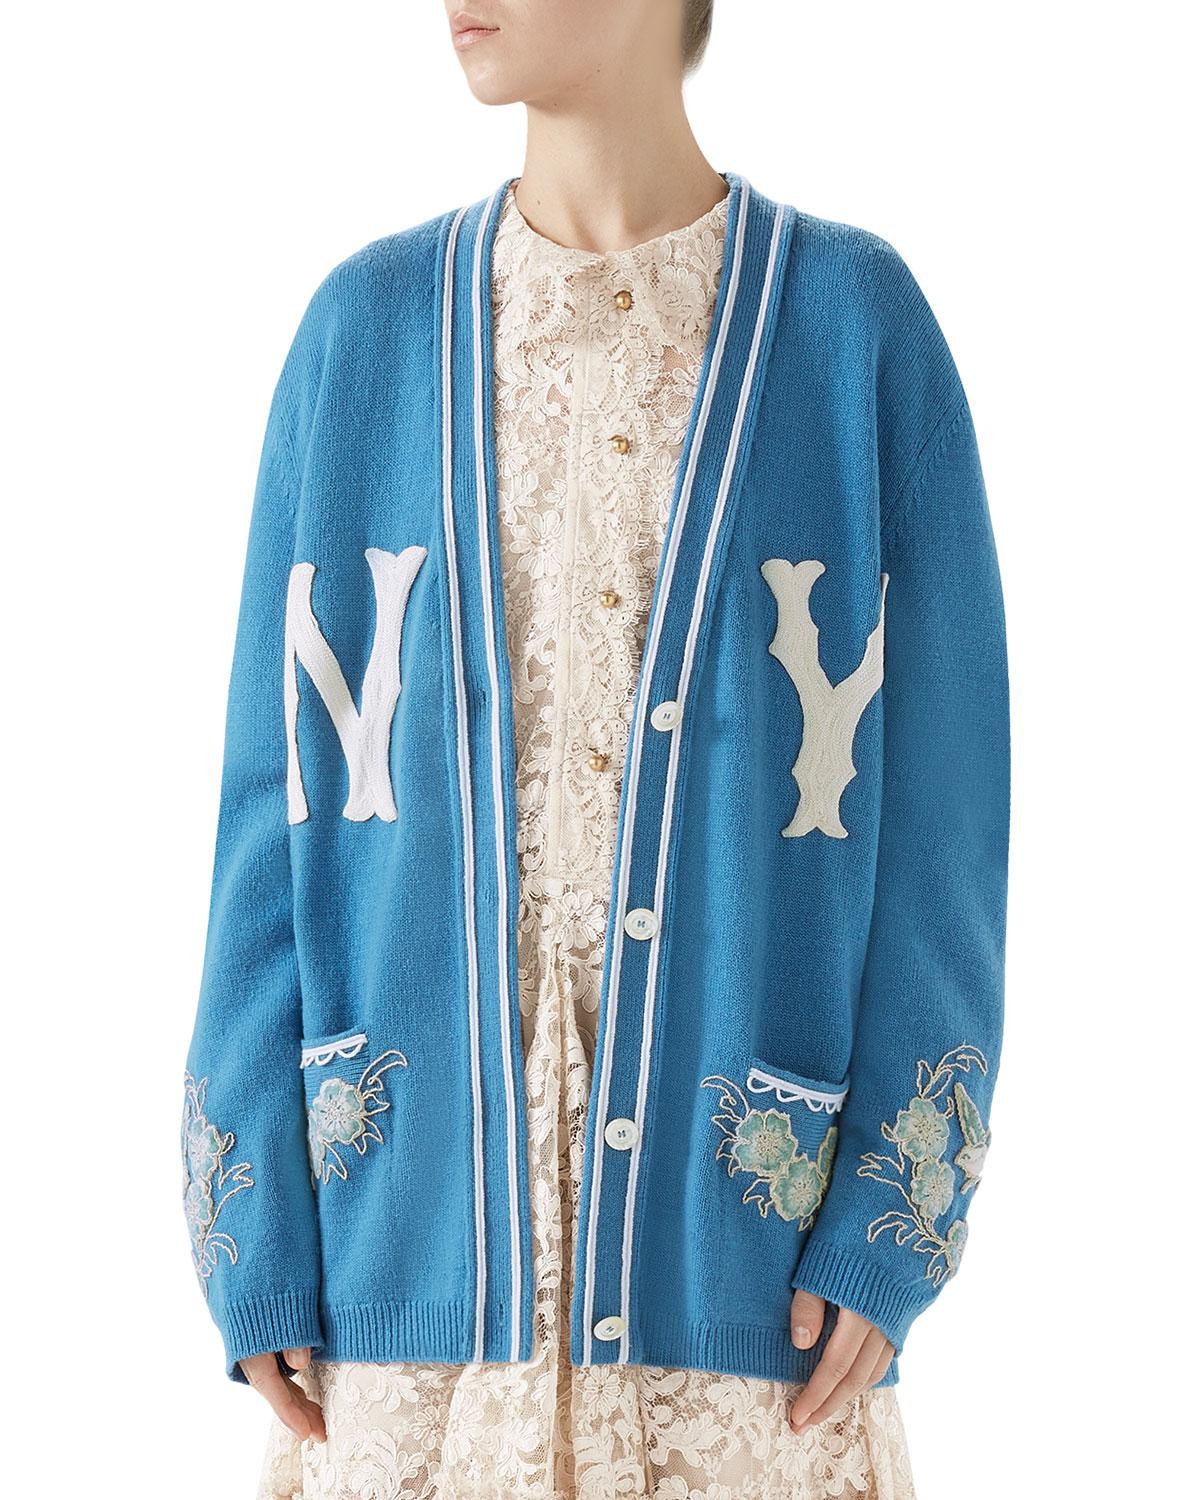 682630f15 Gucci Ny Yankees Mlb V-neck Wool Cardigan With Flower Appliques in ...